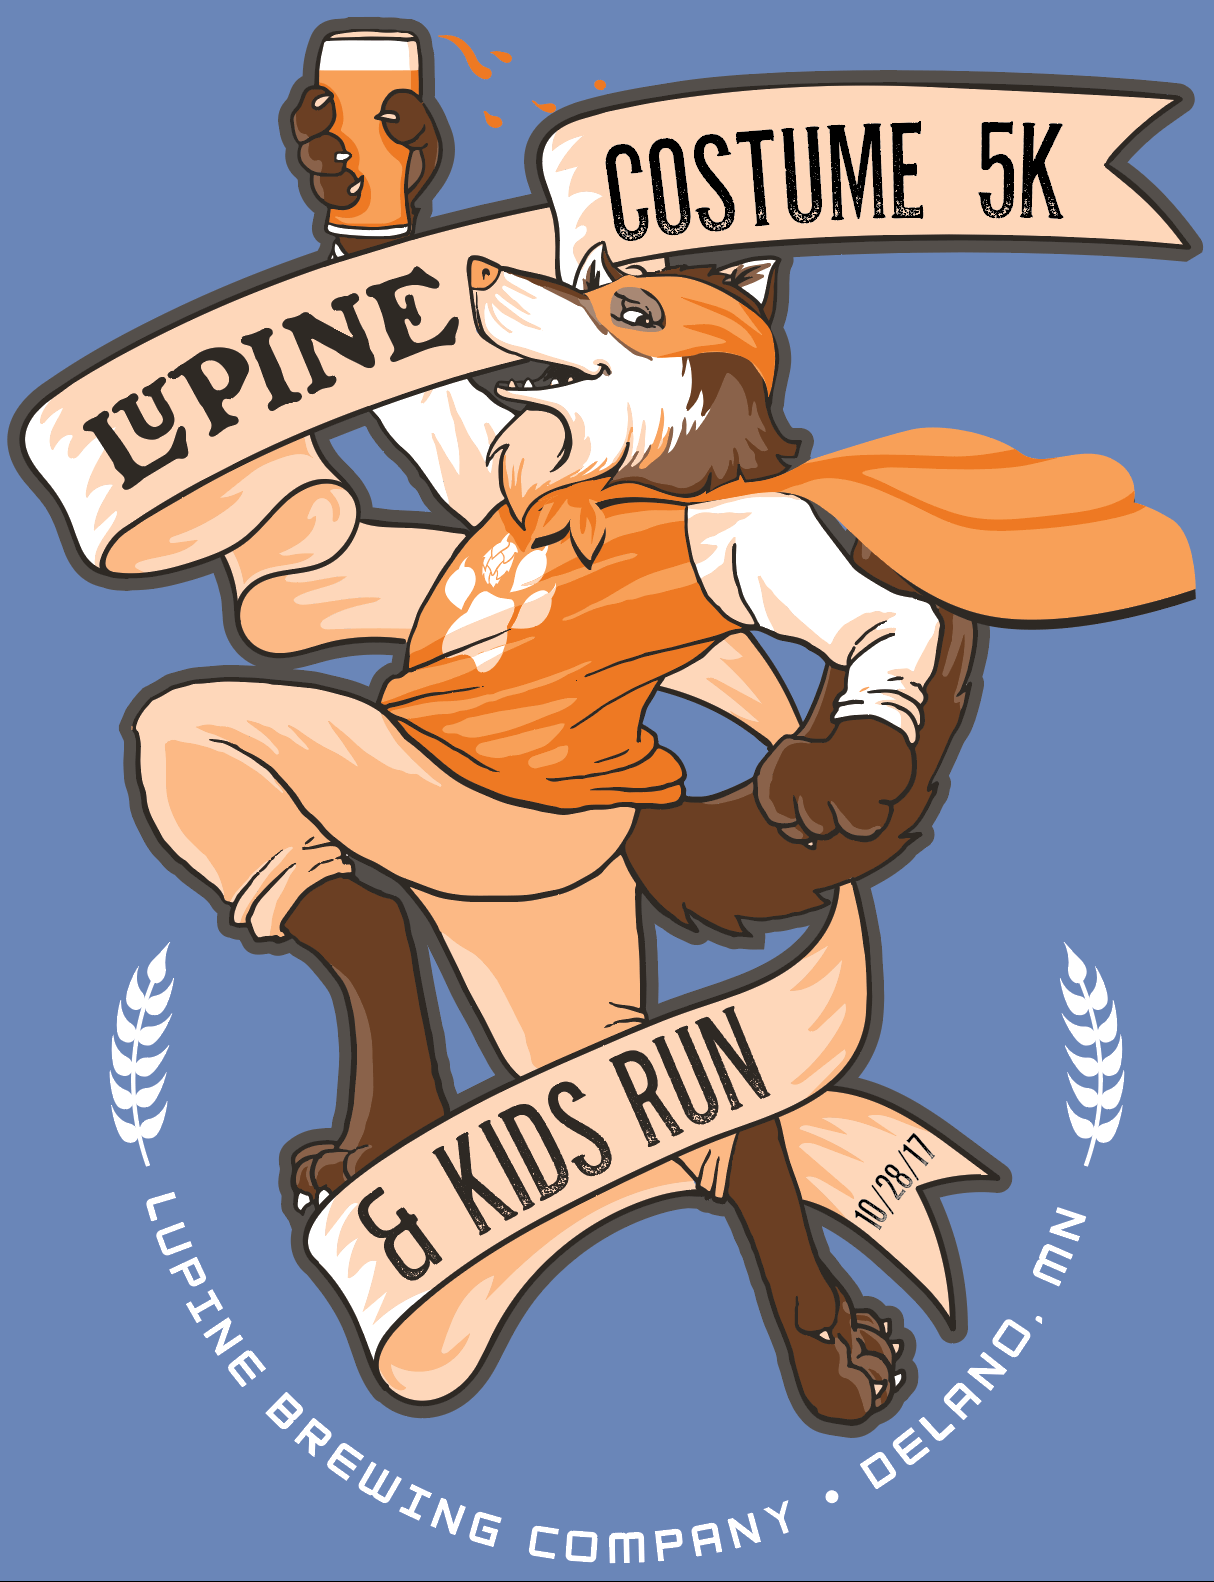 Lupine Brewing Costume 5K & Kids 1/4 mile Run